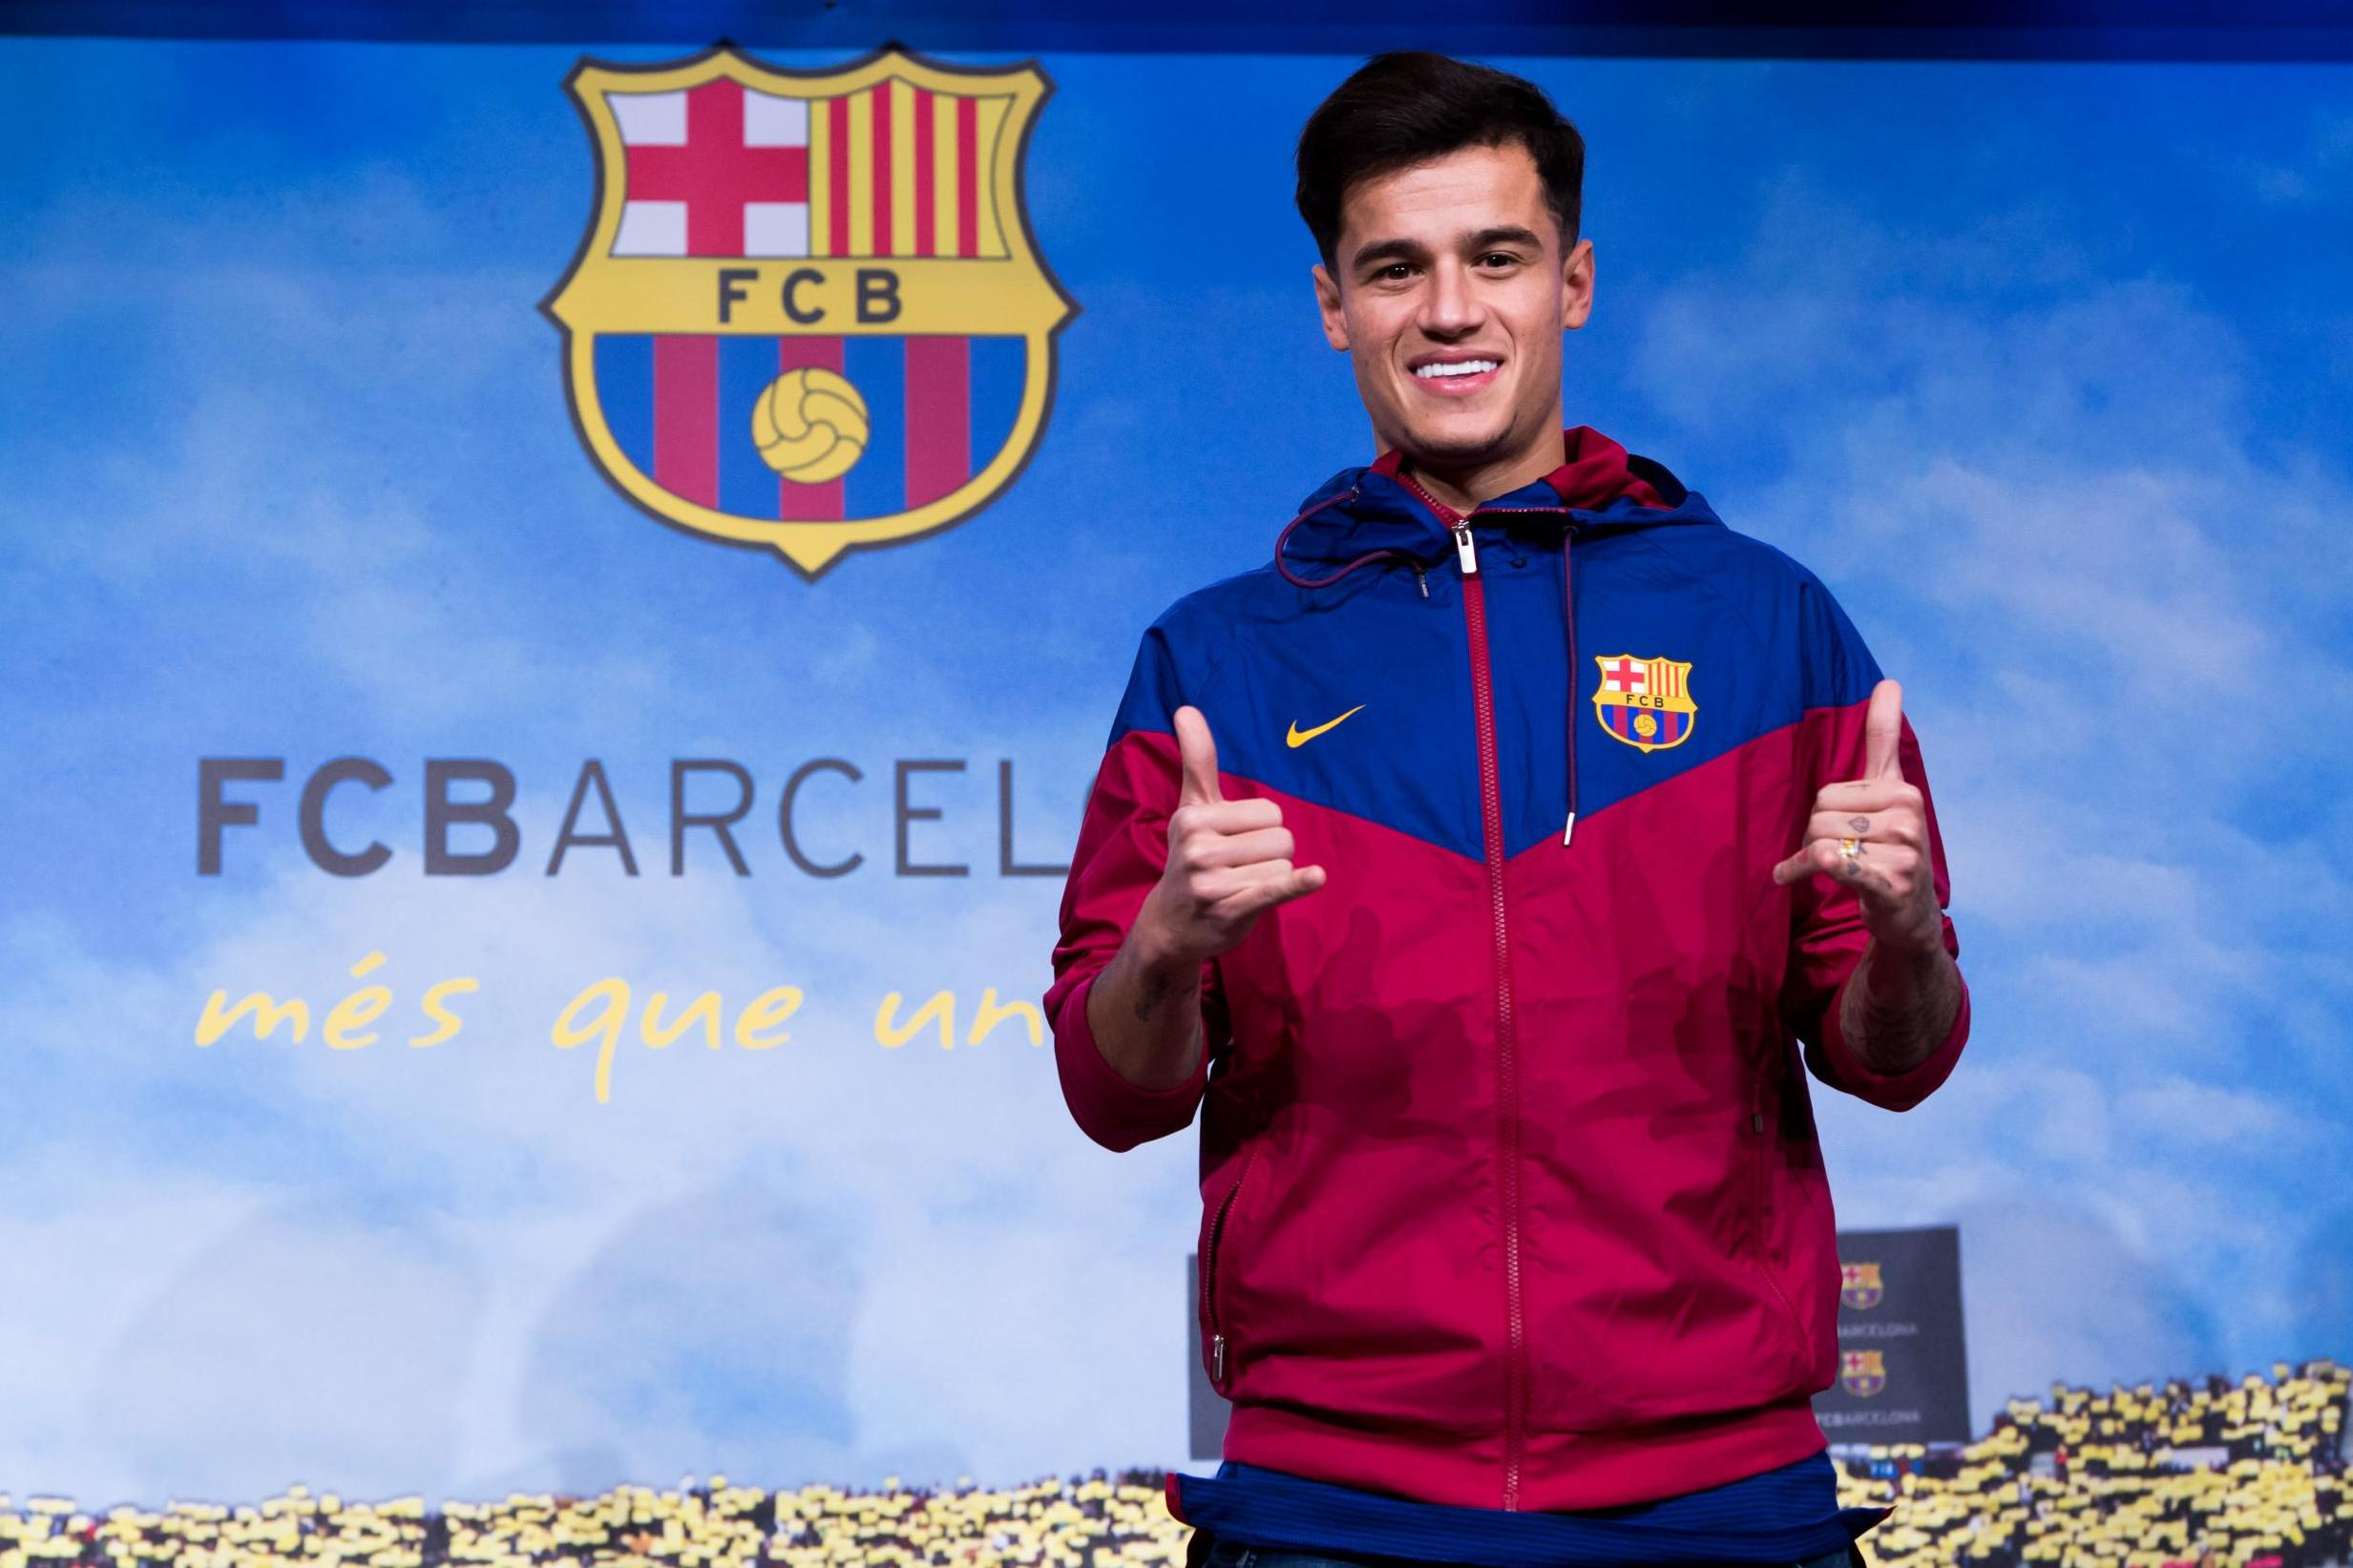 London Iphone X Wallpaper Philippe Coutinho Shirt Number Barcelona Star Takes No 14